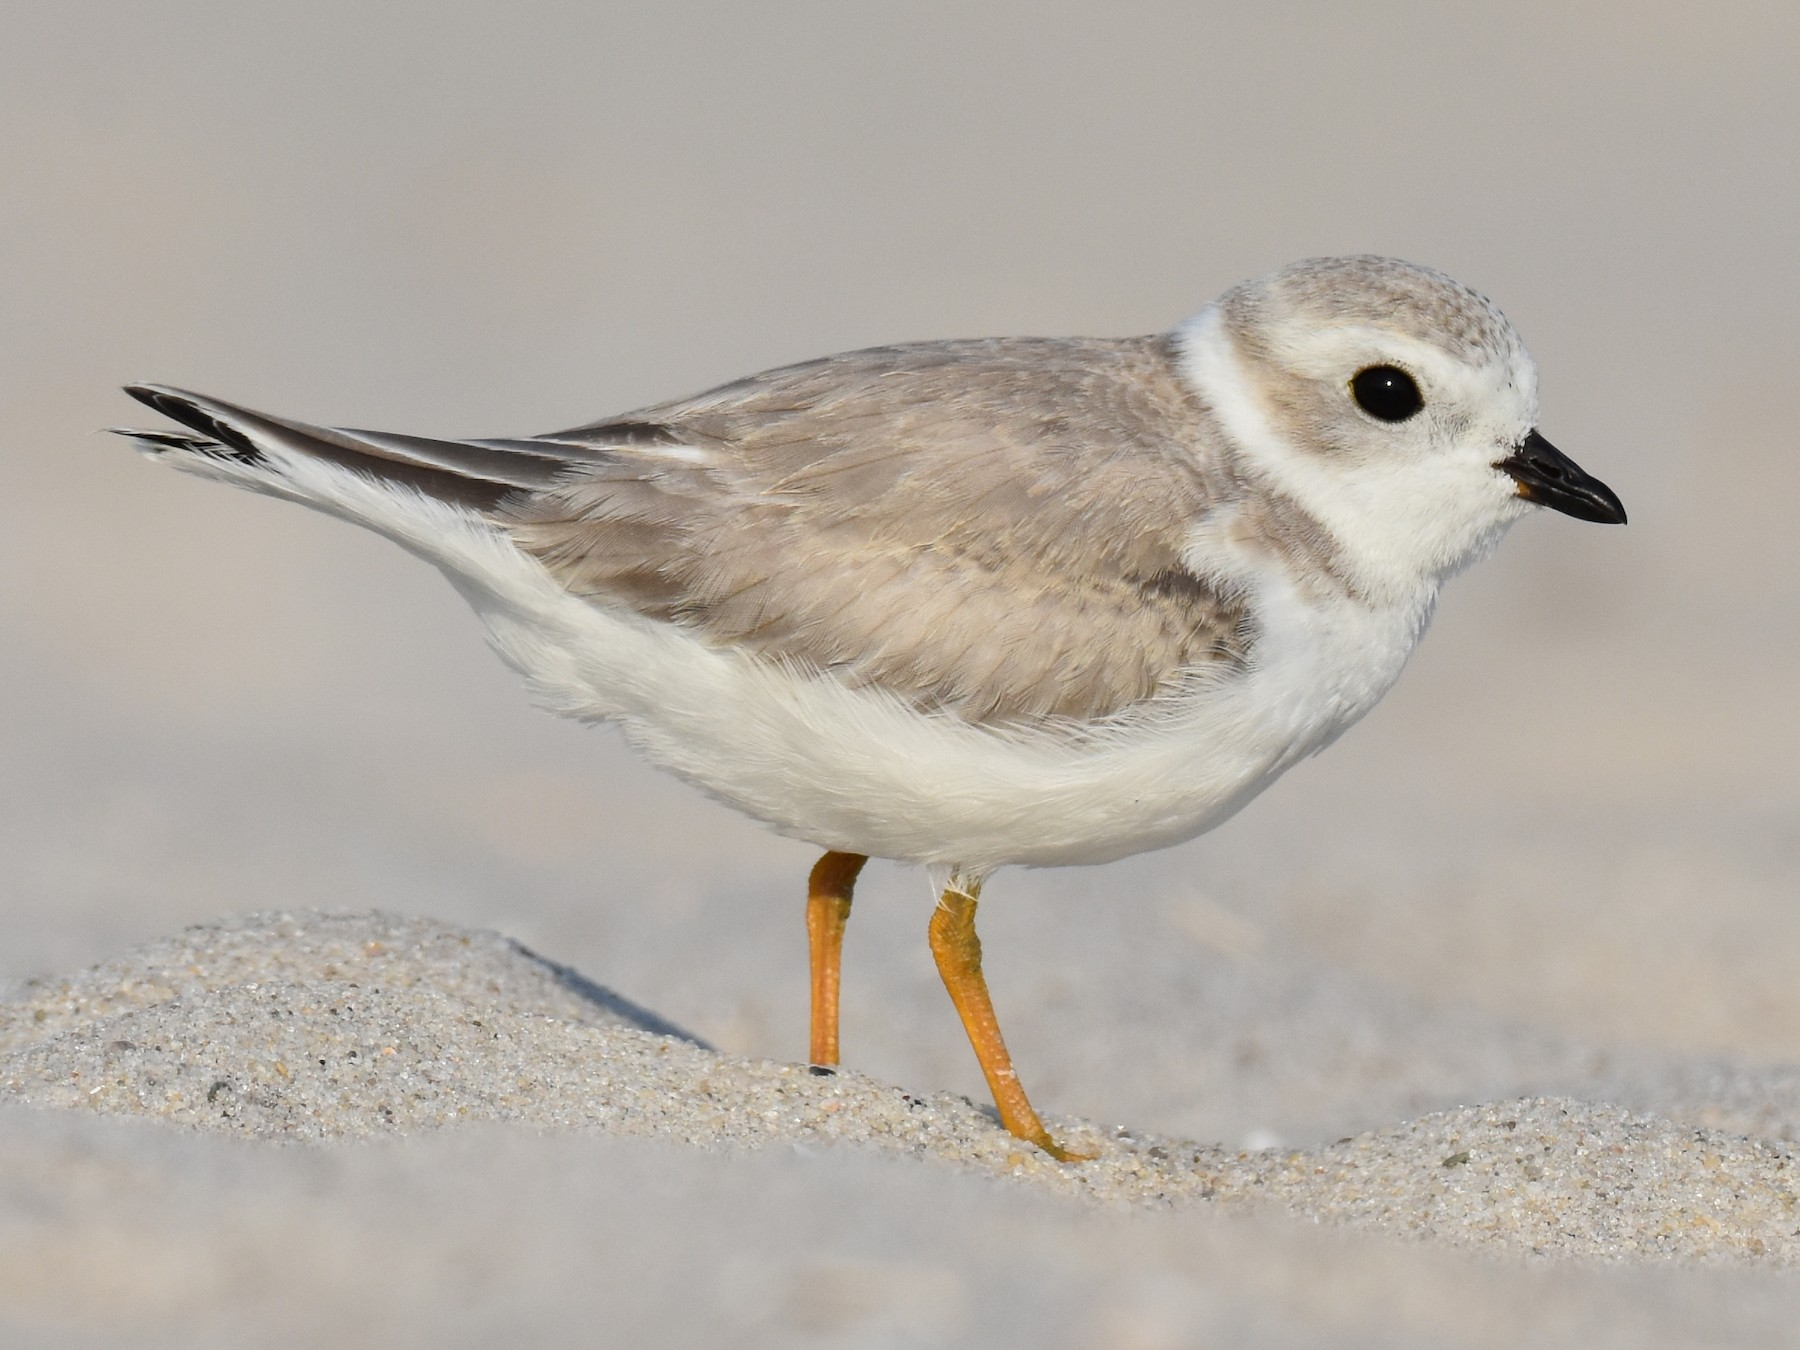 Piping Plover - Jack Parlapiano